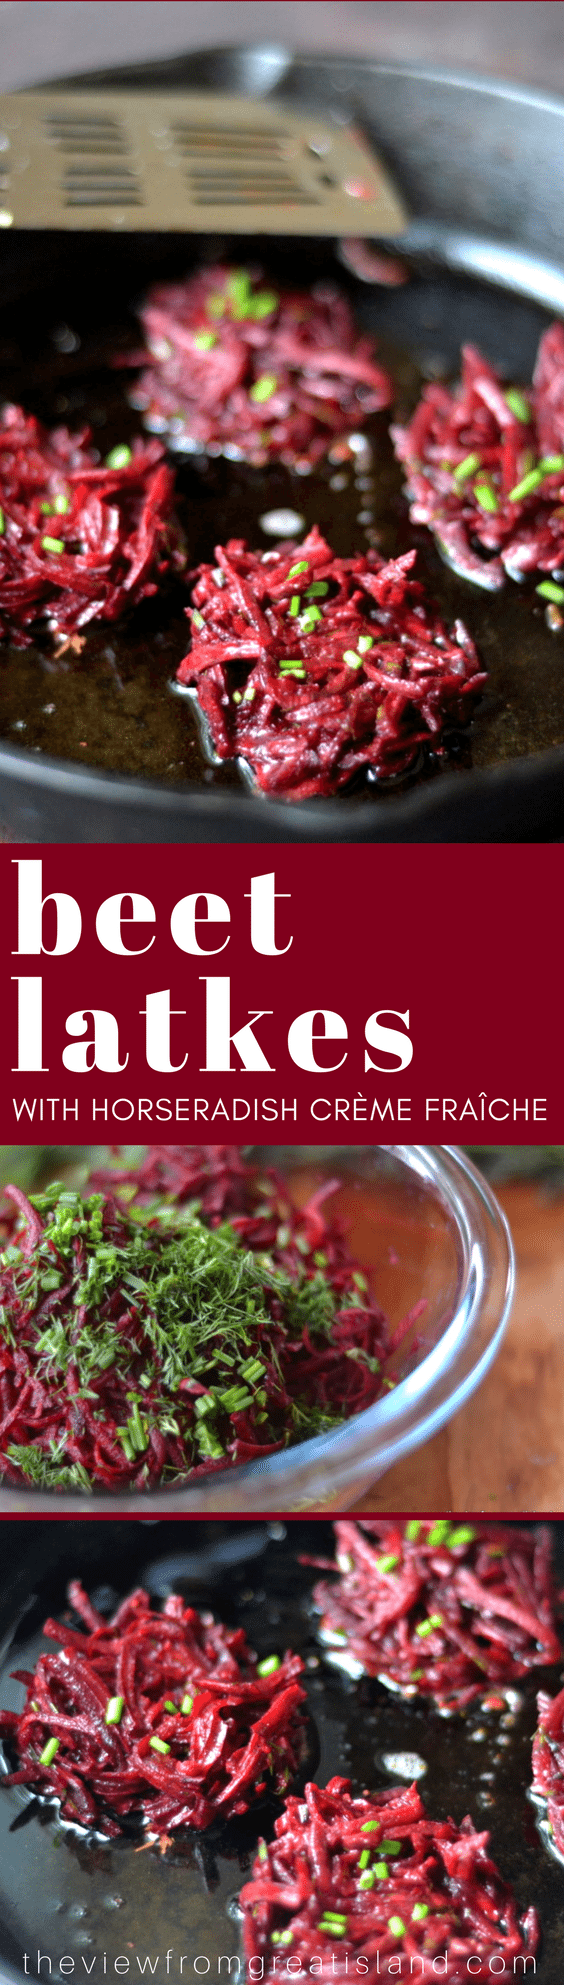 Beet Latkes with Horseradish Crème Fraîche ~ a delicious and vibrant riff on classic potato latkes that will have everyone begging for seconds! #beets #latkes #vegetables #fritters #vegetarian #vegan #Passover #hanukkah #Jewishrecipes #breakfast #sidedish